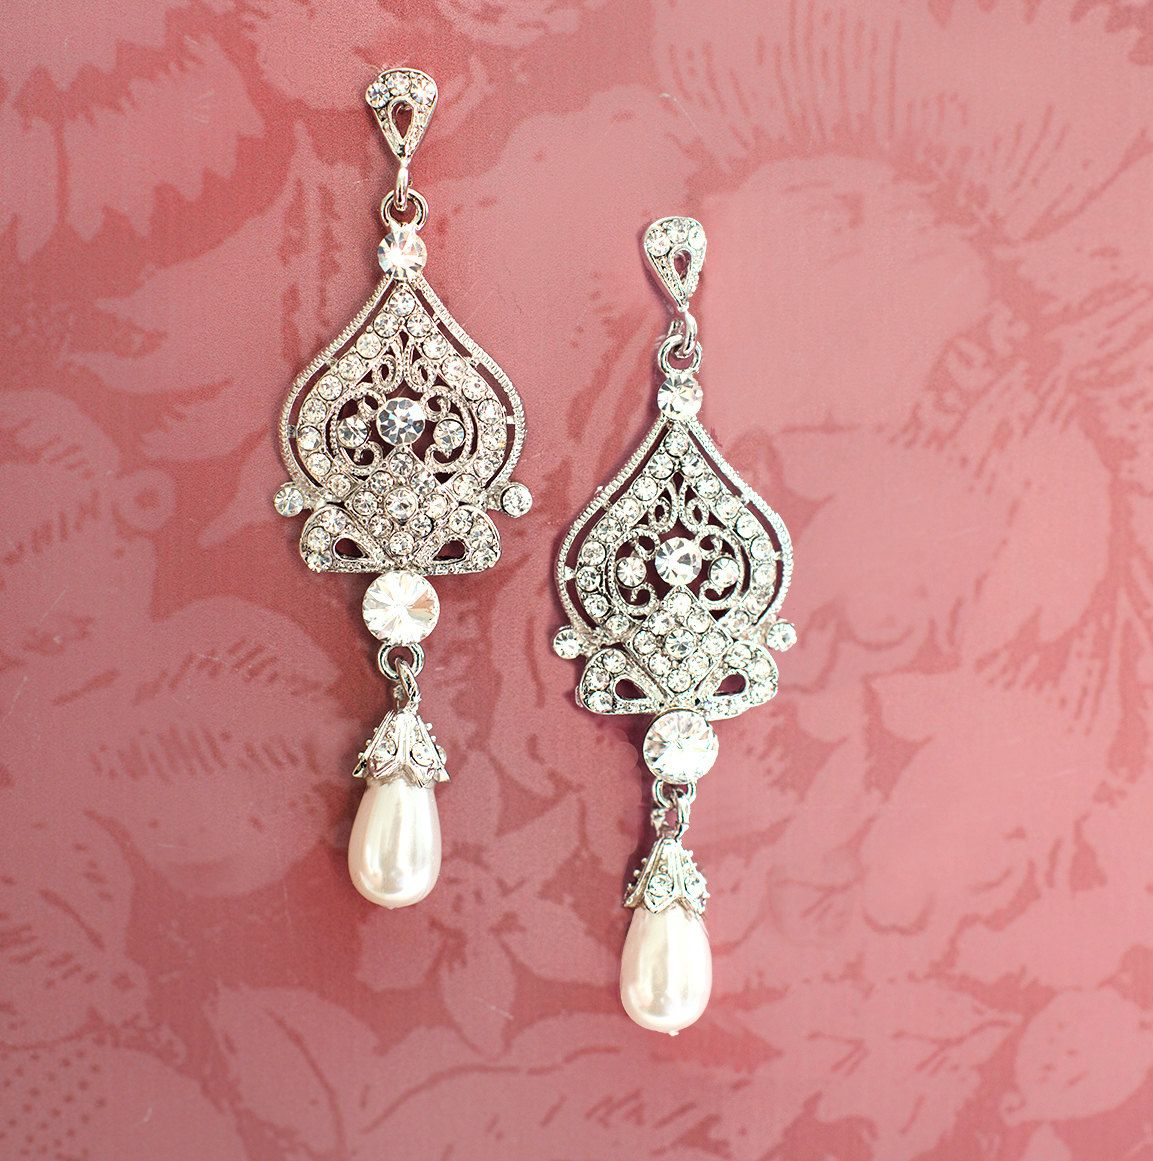 1920s Earrings Bridal Pearl Earrings Pearl By Lottiedadesigns, $5500